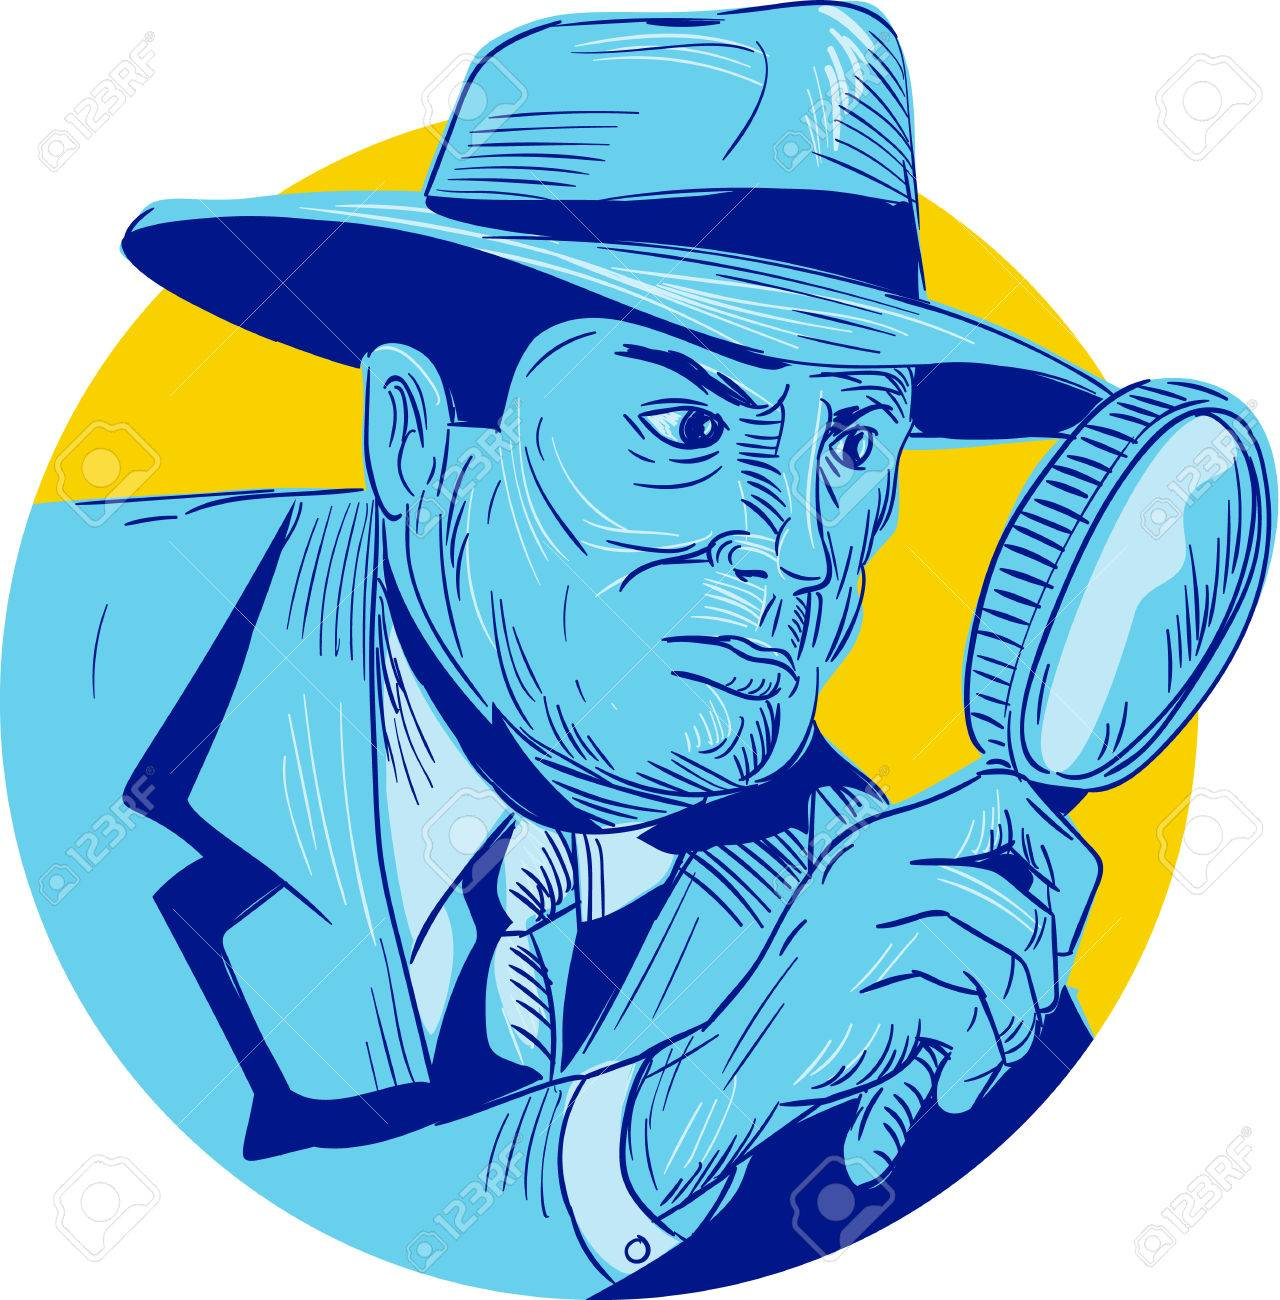 dc2babde20a Drawing sketch style illustration of a detective policeman police officer  holding magnifying glass set inside circle